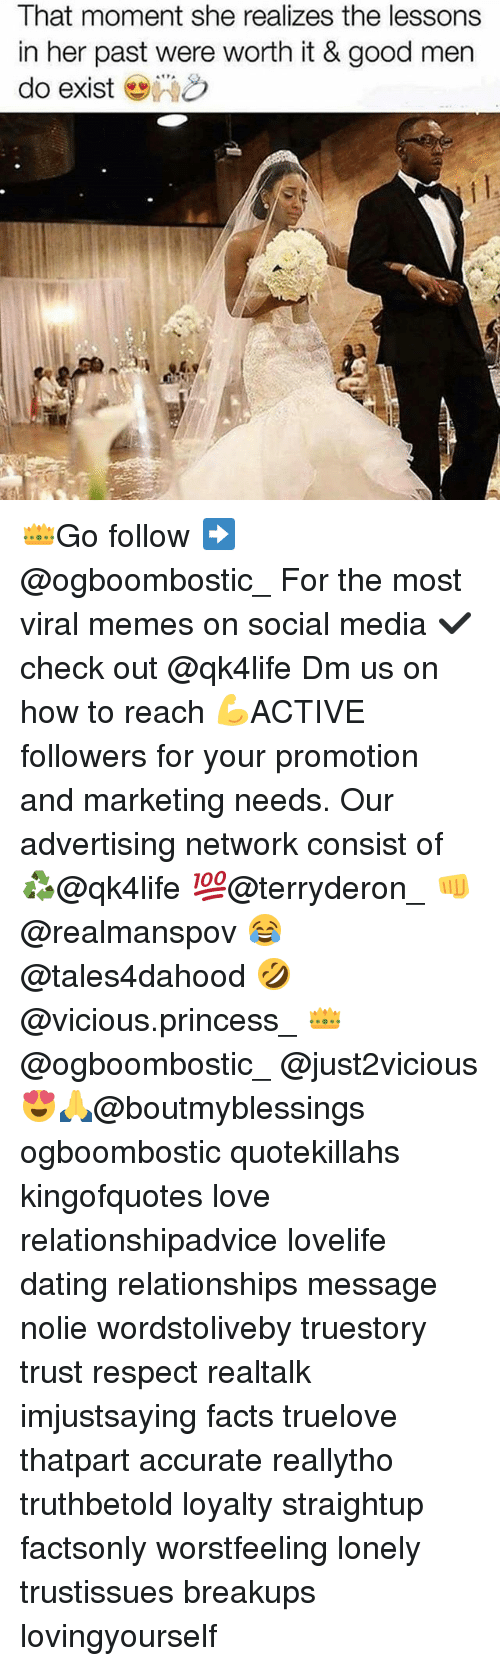 Dating, Facts, and Love: That moment she realizes the lessons  in her past were worth it & good men  do exist 👑Go follow ➡@ogboombostic_ For the most viral memes on social media ✔check out @qk4life Dm us on how to reach 💪ACTIVE followers for your promotion and marketing needs. Our advertising network consist of ♻@qk4life 💯@terryderon_ 👊@realmanspov 😂@tales4dahood 🤣@vicious.princess_ 👑@ogboombostic_ @just2vicious😍🙏@boutmyblessings ogboombostic quotekillahs kingofquotes love relationshipadvice lovelife dating relationships message nolie wordstoliveby truestory trust respect realtalk imjustsaying facts truelove thatpart accurate reallytho truthbetold loyalty straightup factsonly worstfeeling lonely trustissues breakups lovingyourself